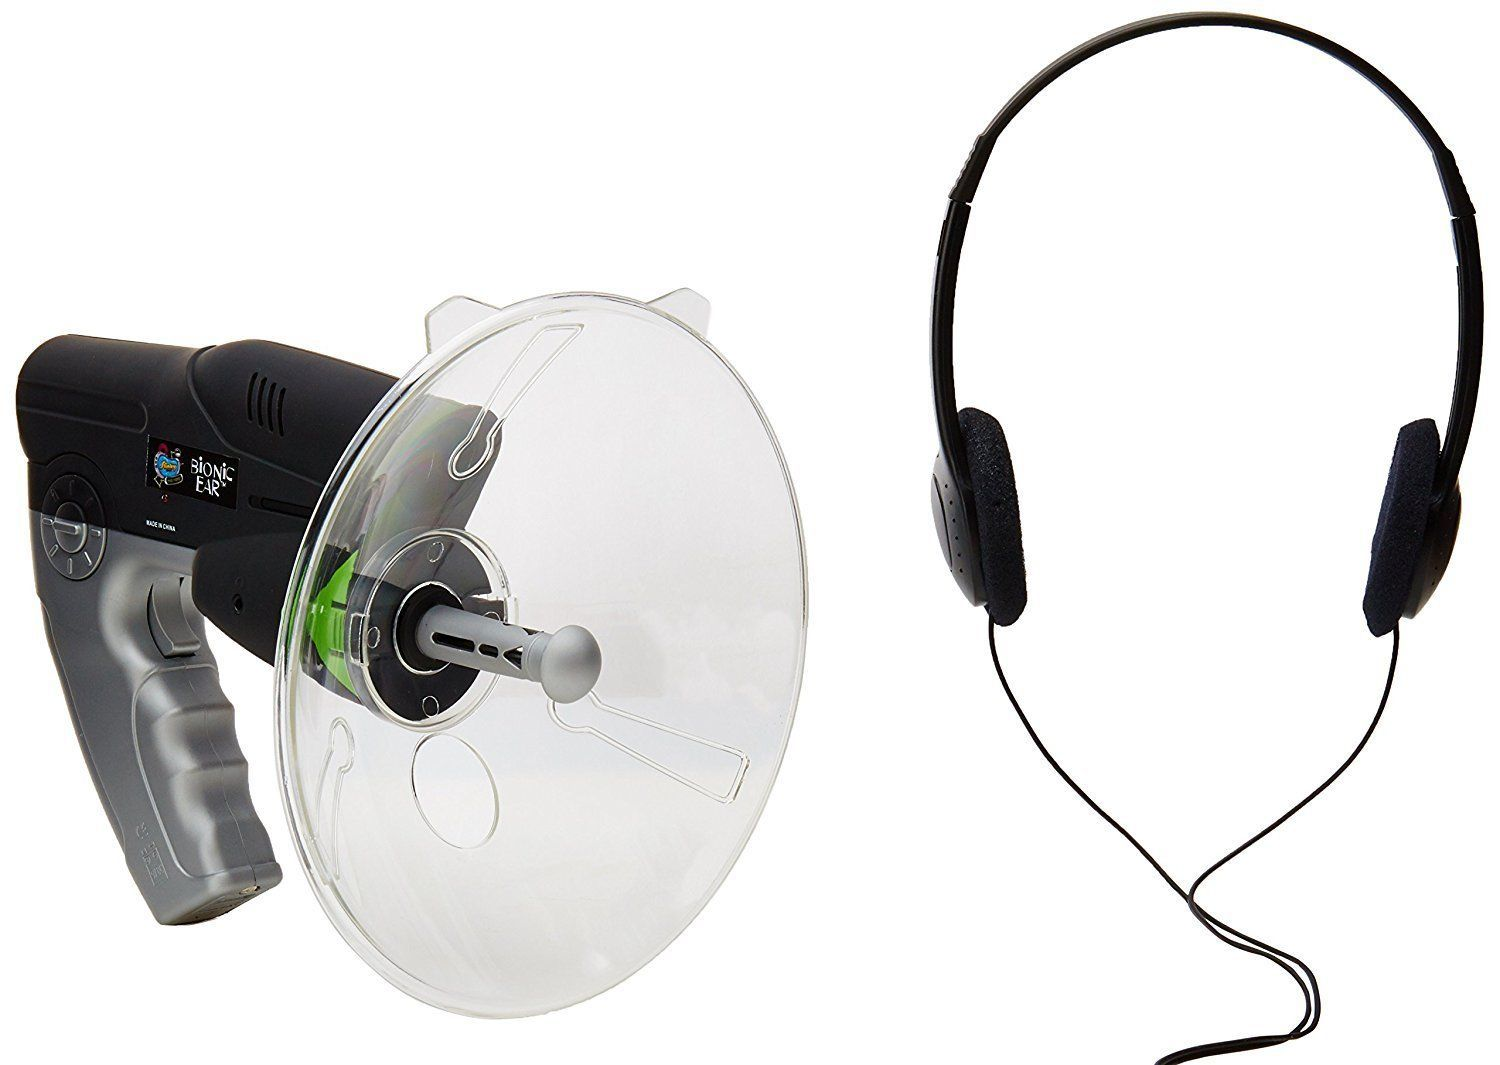 Parabolic Microphone Spy Listening Device Bionic Ear Sound Amplifier Gadget